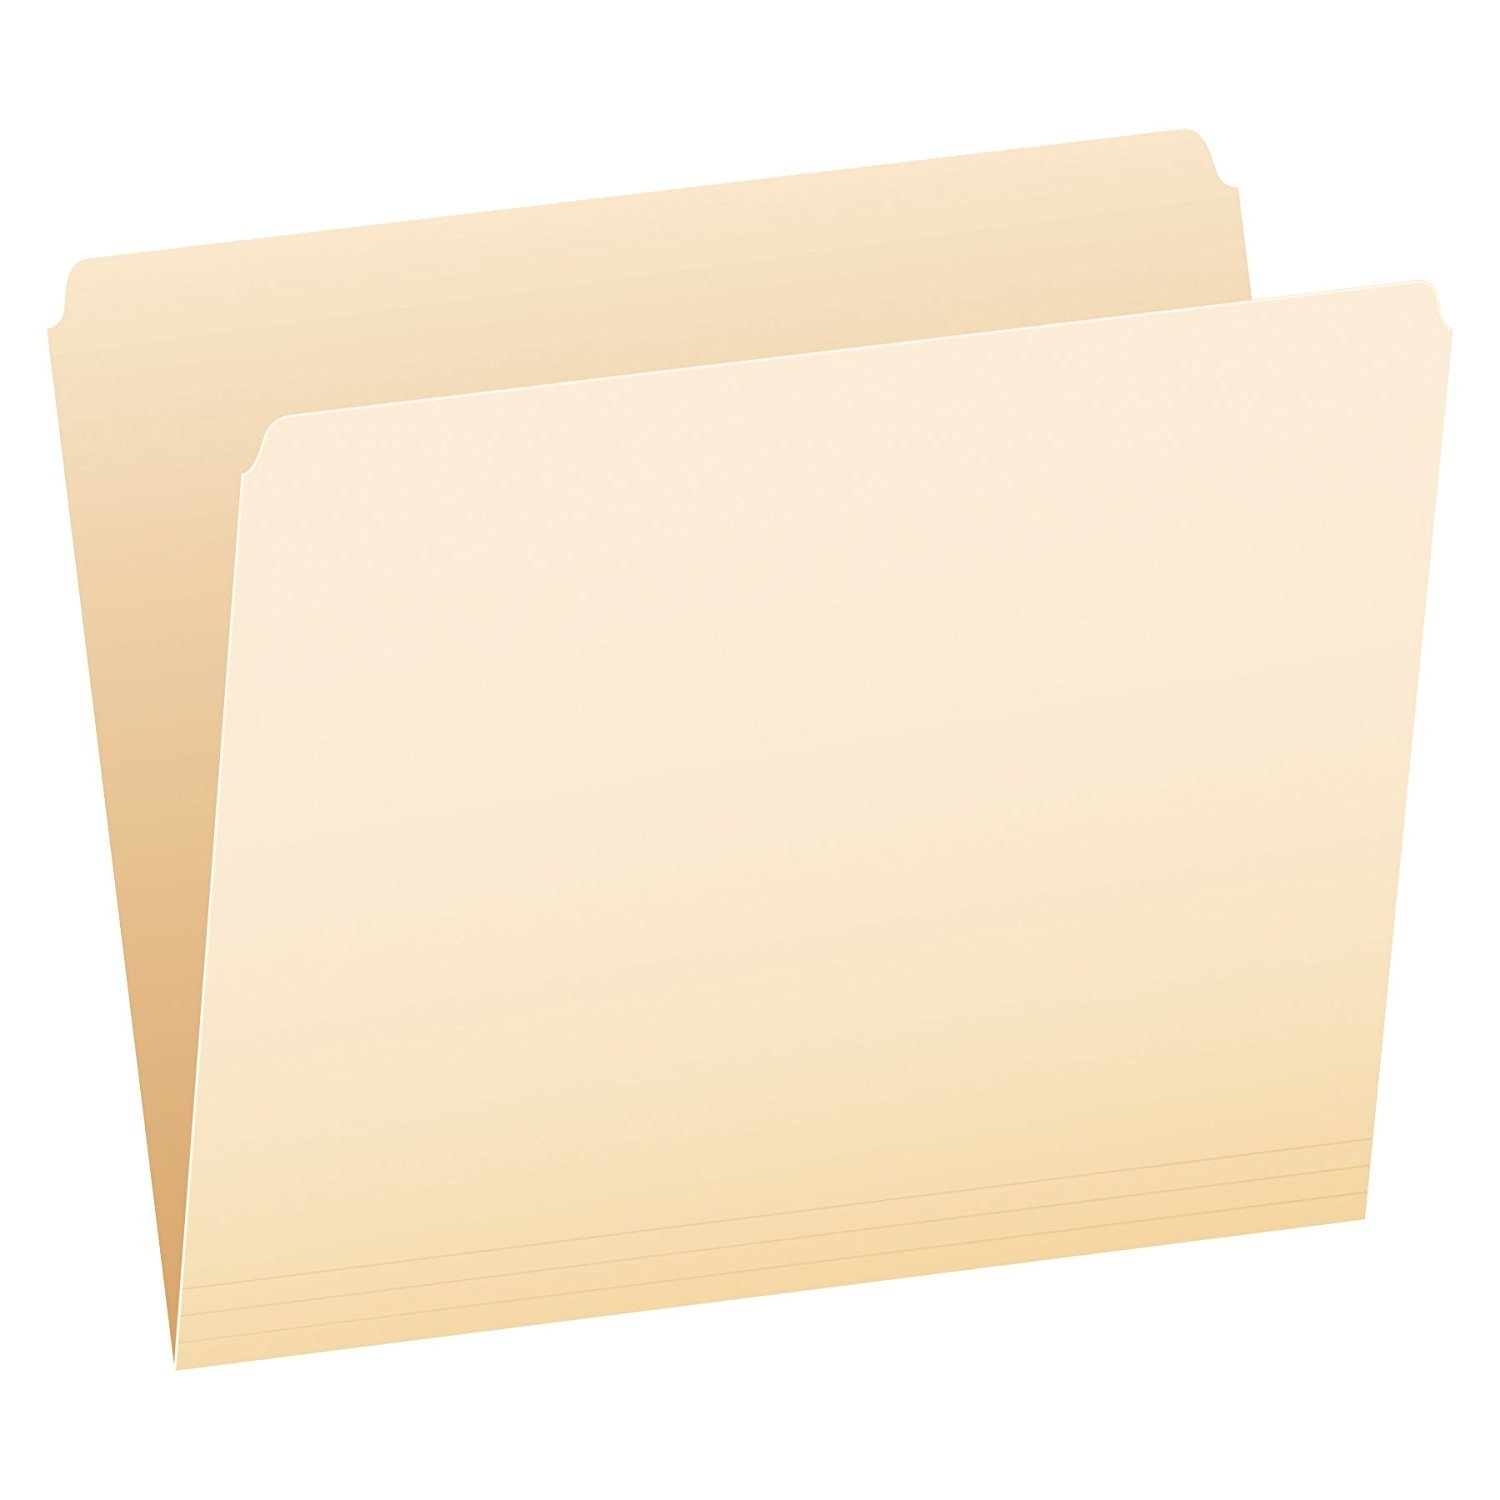 Pendaflex File Folders, Letter Size, Manila, Straight Cut, 100/BX (752) 3-Pack